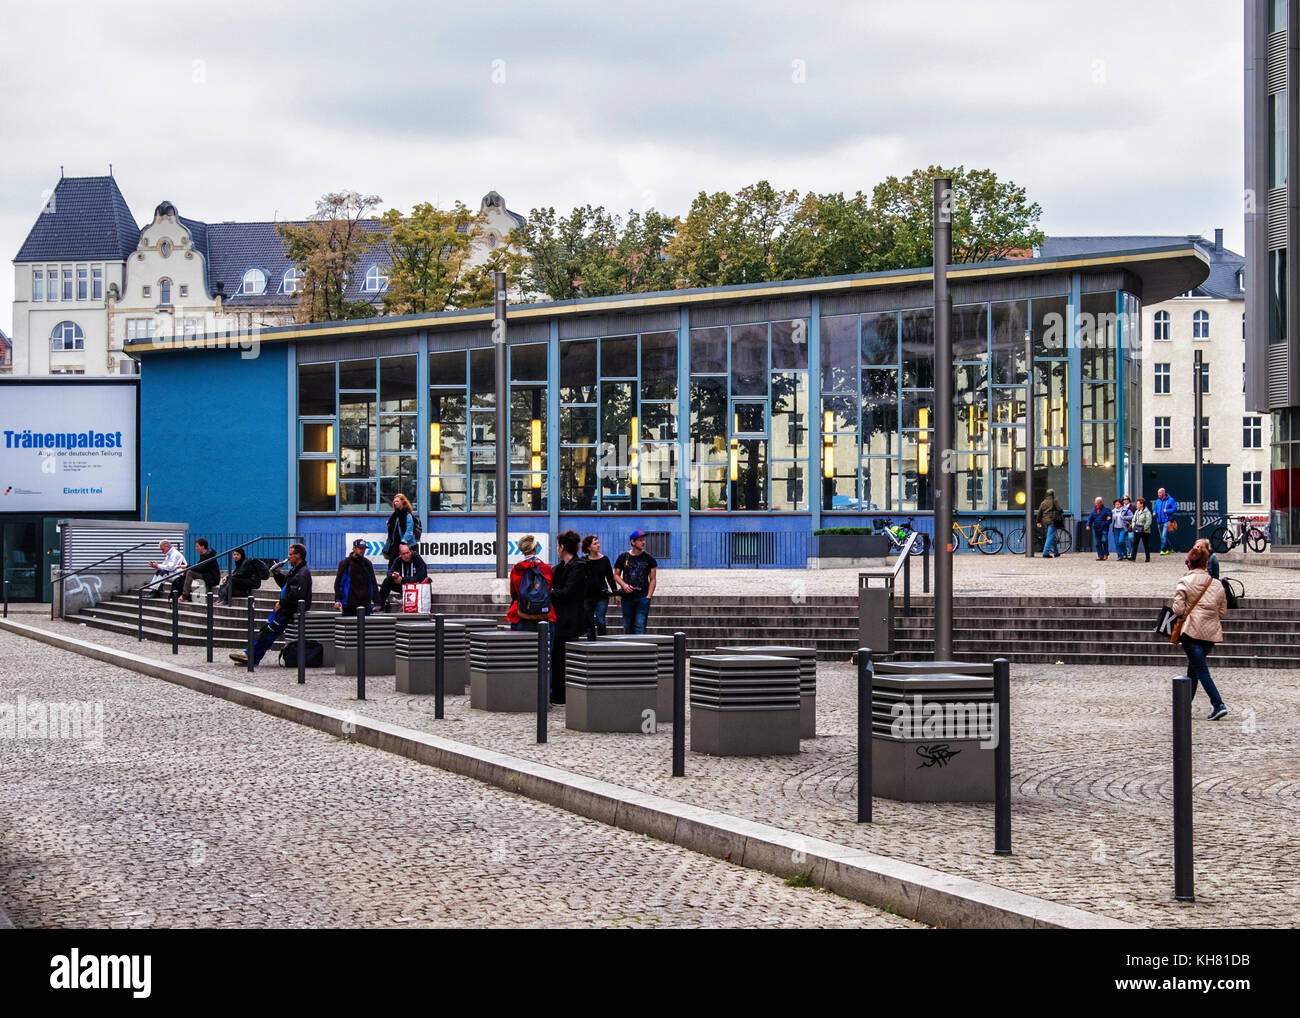 Berlin, Mitte.Tränenpalast,Palace of Tears.Exhibition and museum tells of border experiences of people living - Stock Image